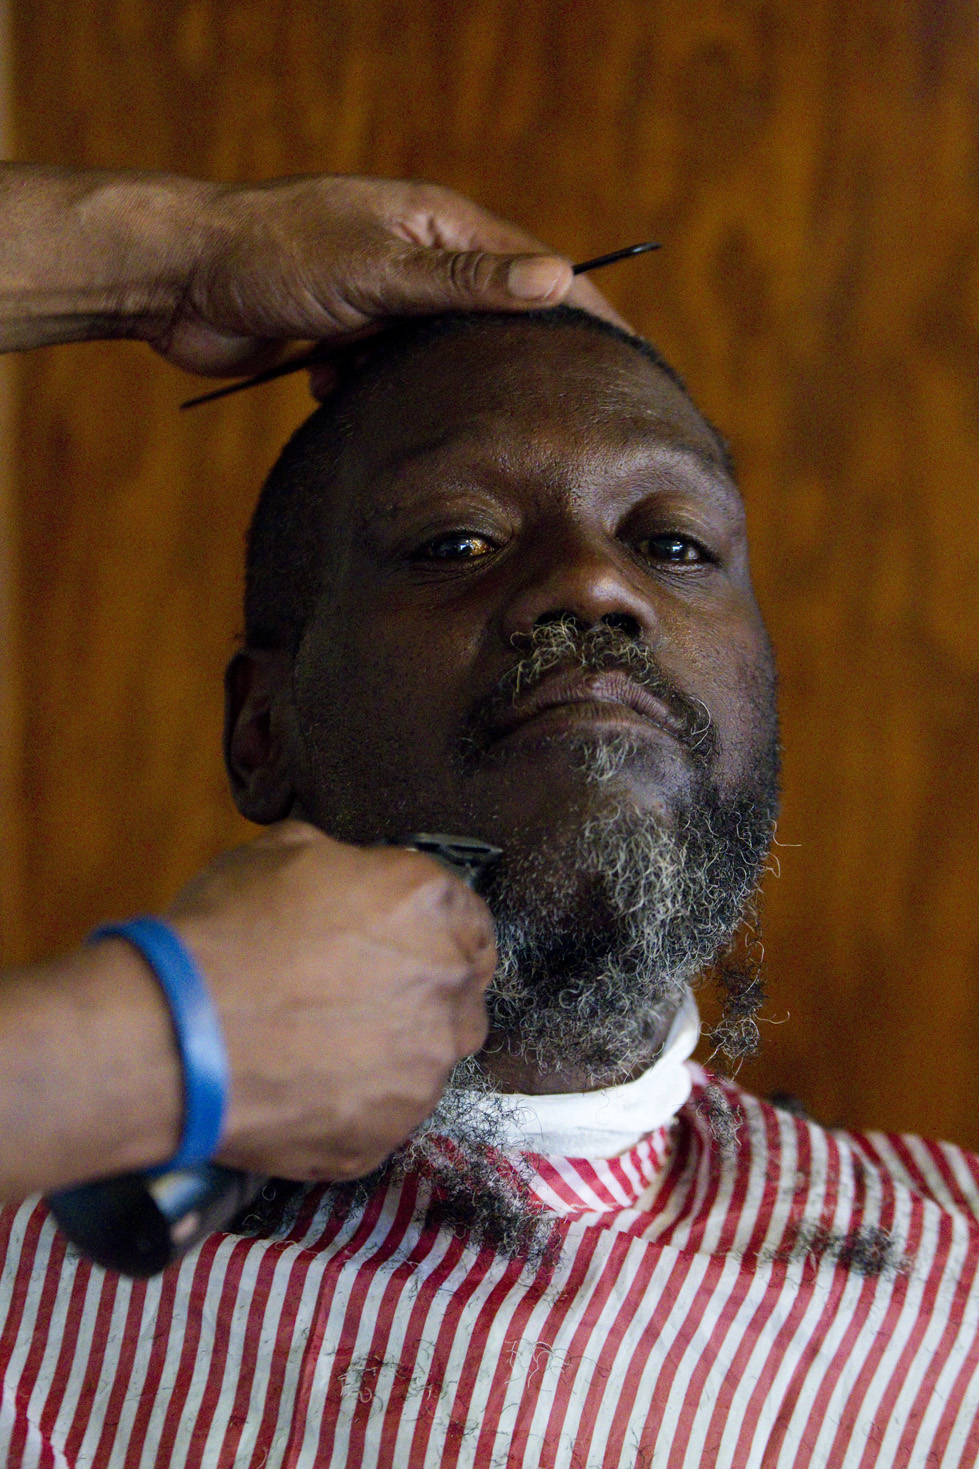 John Toney, a barber at Uppercuts, gives Charles Cotton a free haircut as a part of Barbershop Mondays on Monday, July 14, 2015.  Damien Smith, a youth organizer for Safe and Sound, leads inter-generational conversation around different topics each week while attendees get their hair cut. This week's topic revolved around family structure.